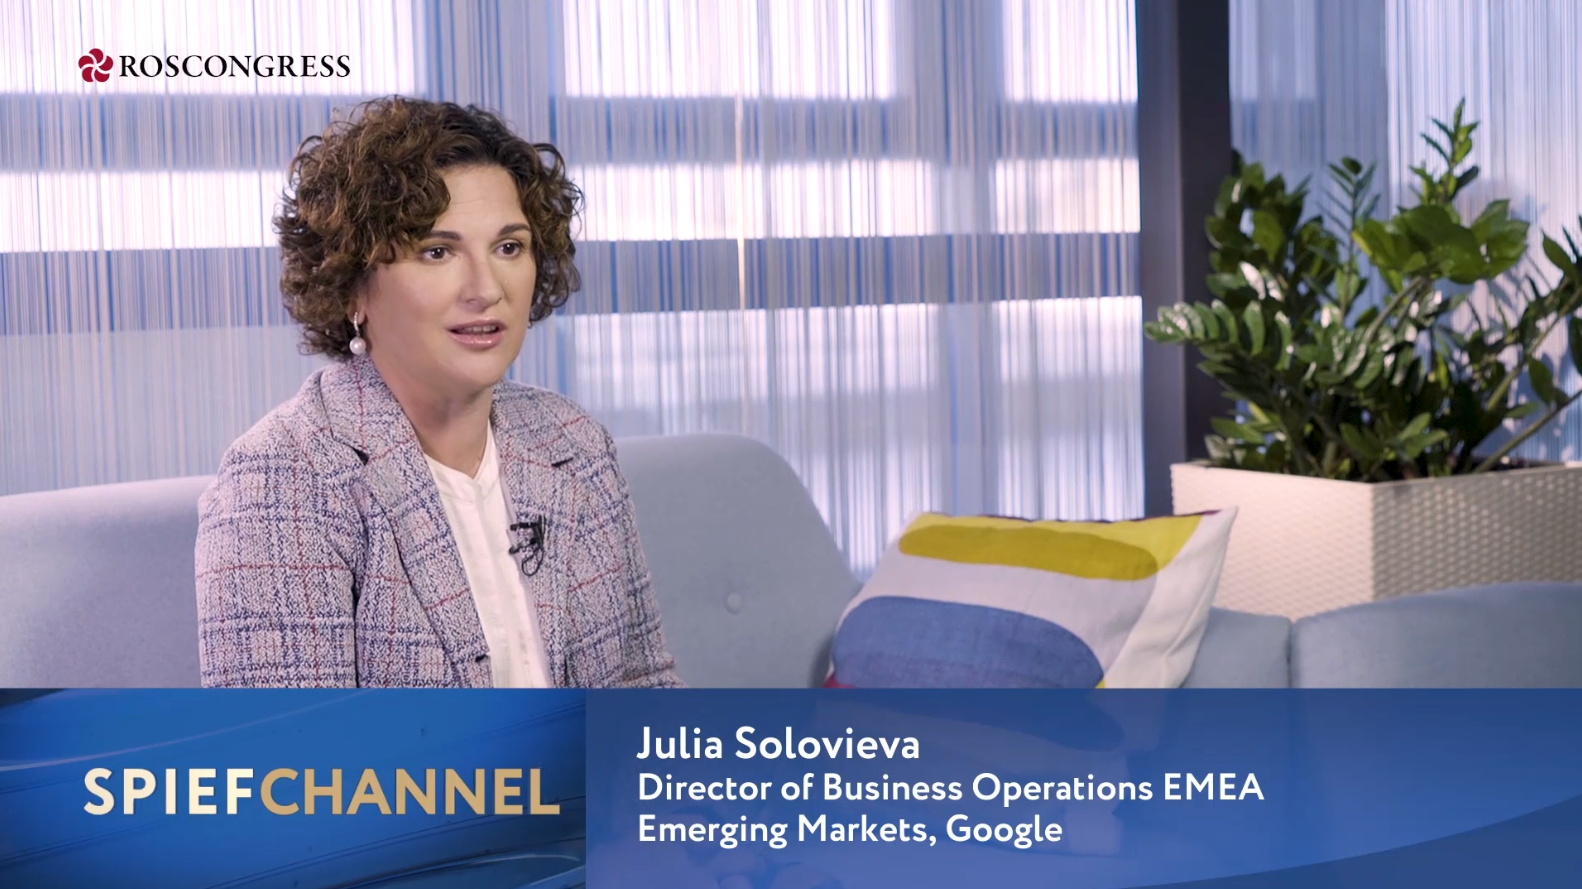 Julia Solovieva,Director Business Operations EMEA Emerging markets, Google